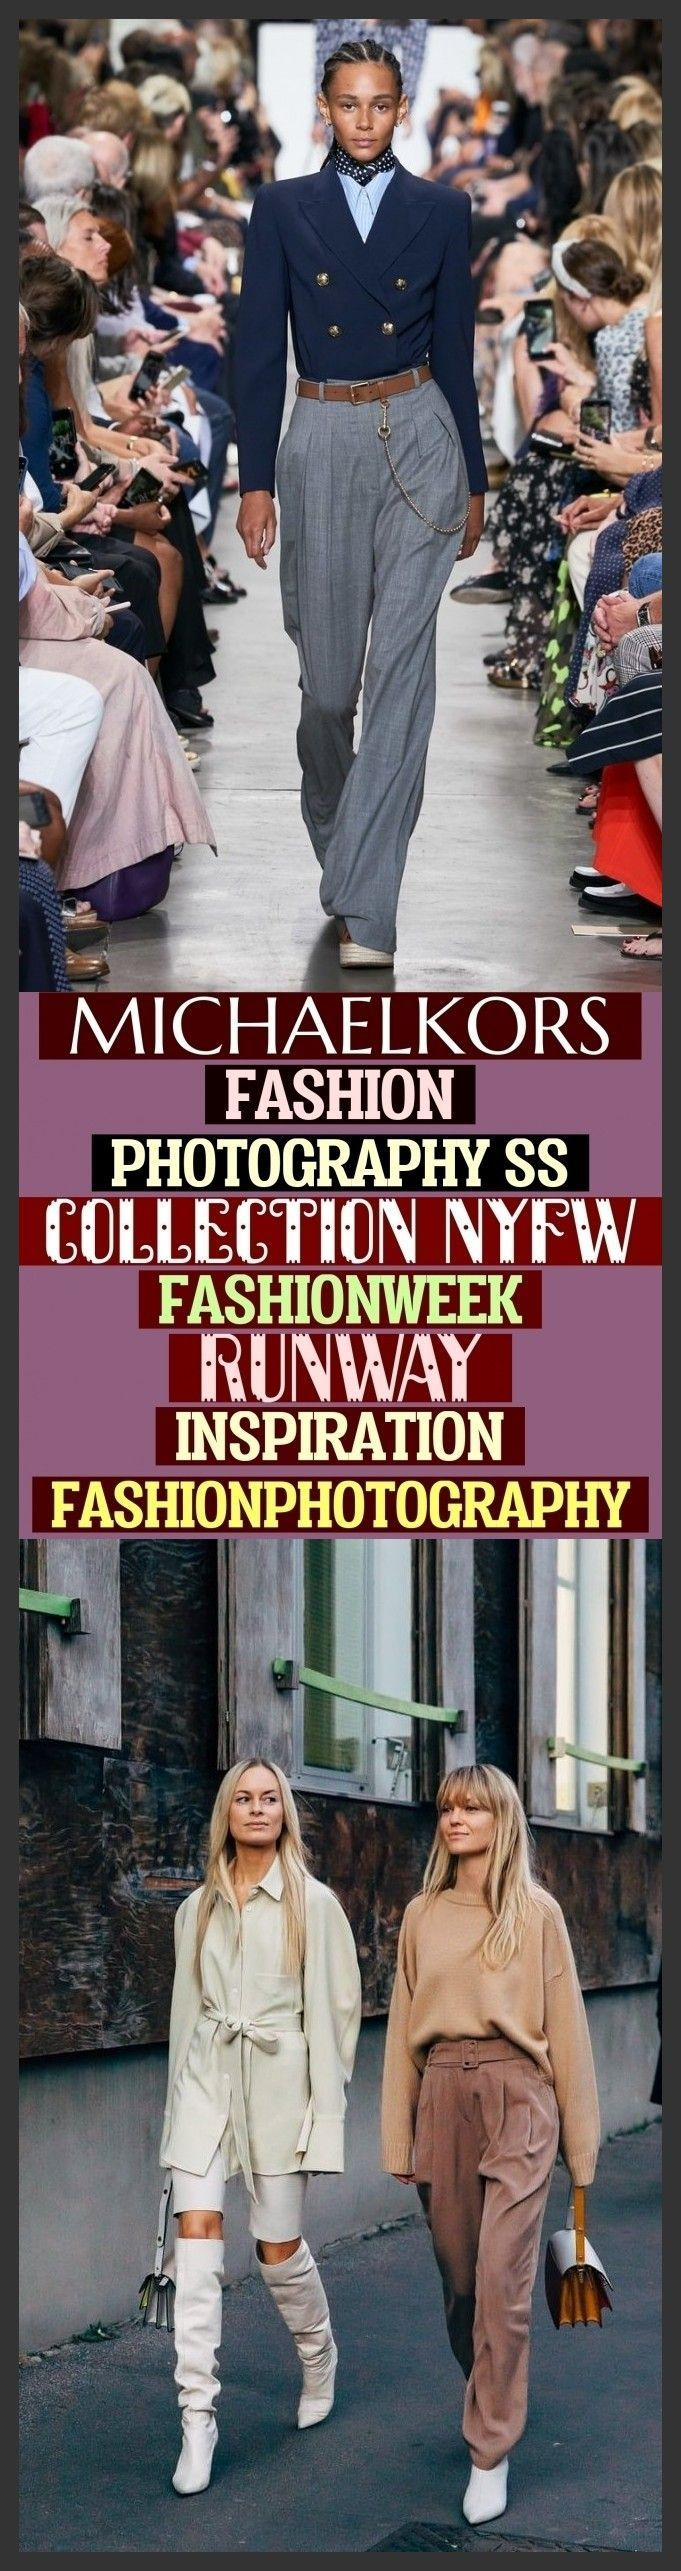 michaelkors  fashion  photography   ss20  collection  michaelkors  fashion  phot... - Dinner outfit fall - #Collection #Dinner #Dinneroutfitfall #Fall #Fashion #michaelkors #Outfit #phot #photography #ss20